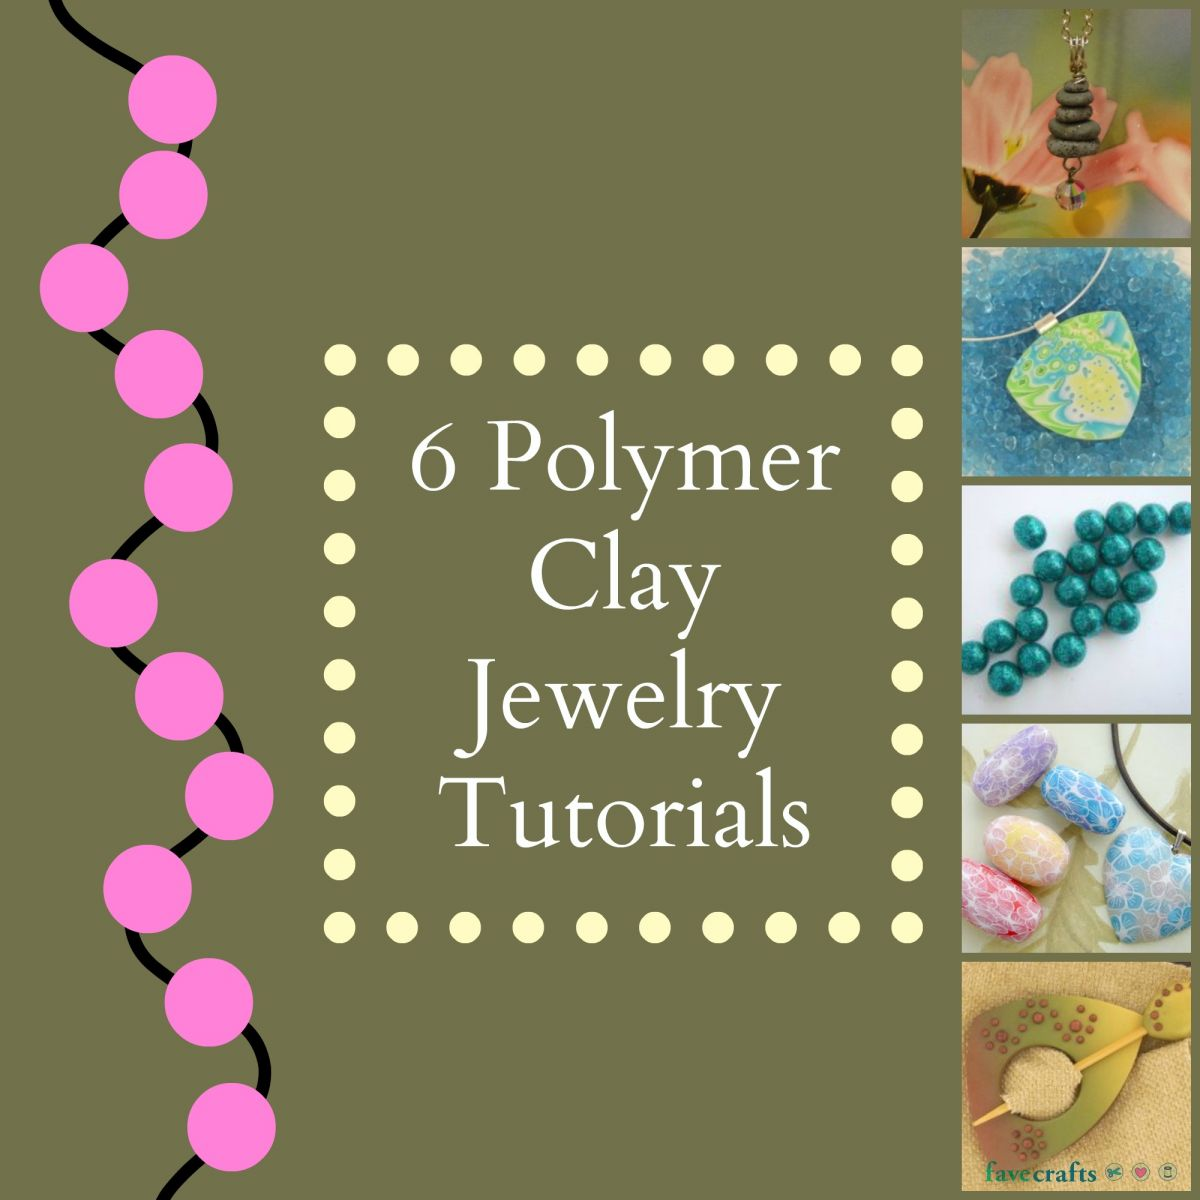 6 Polymer Clay Jewelry Tutorials